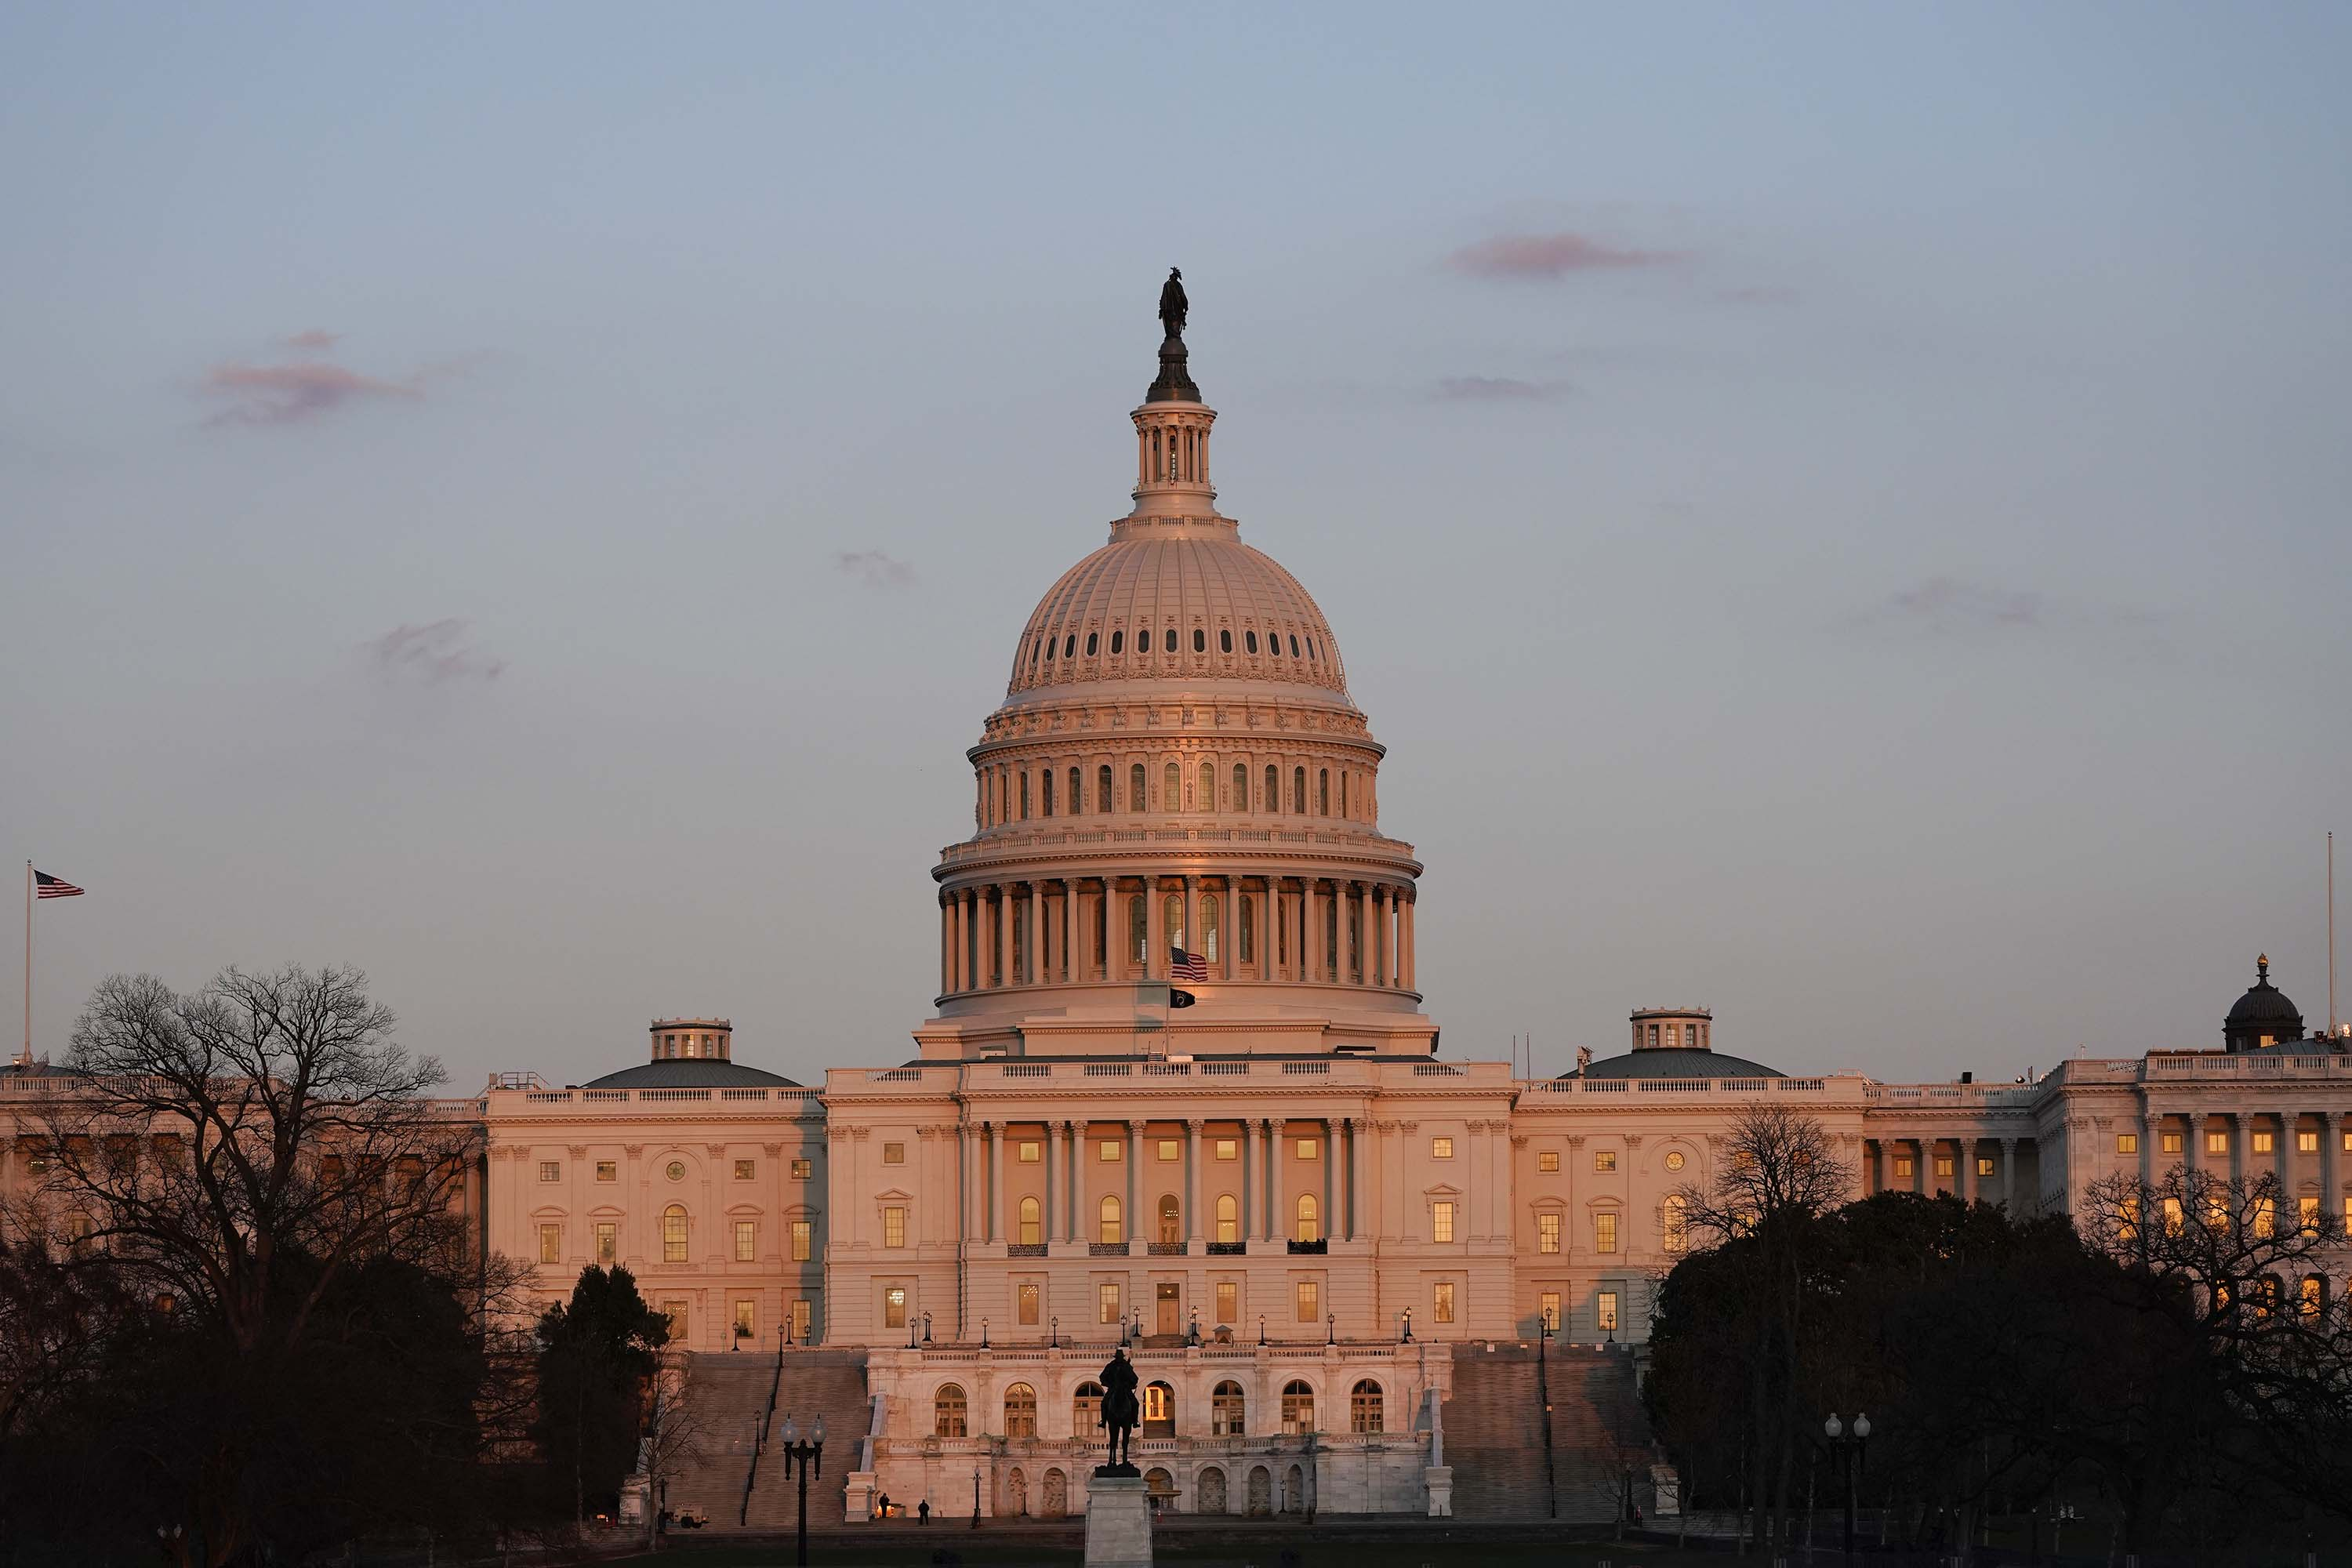 The last hours of the relief bill tick down in the US Senate